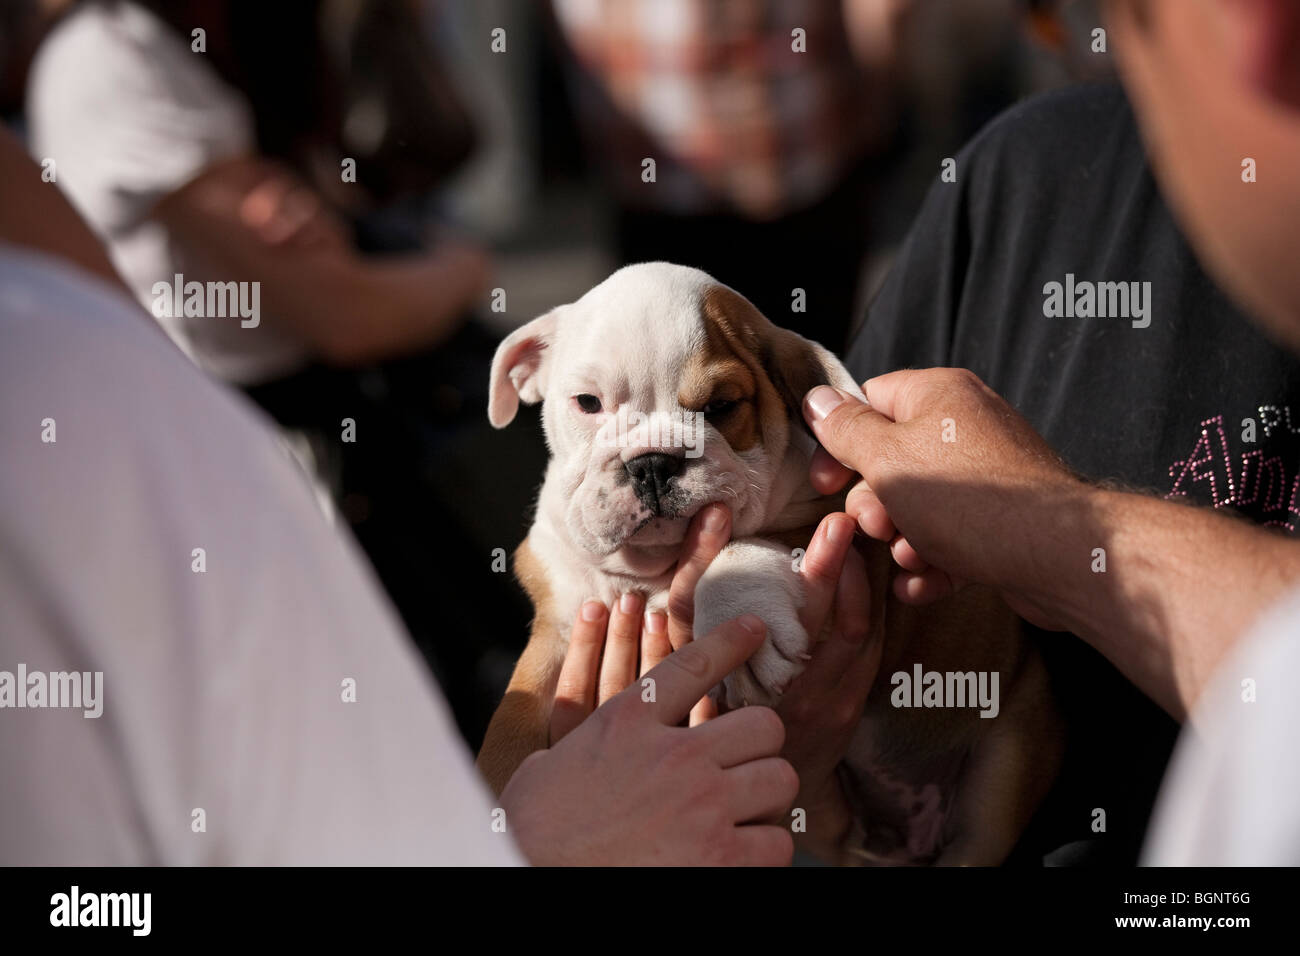 Several hands reaching to pet a tiny English Bulldog puppy - Stock Image